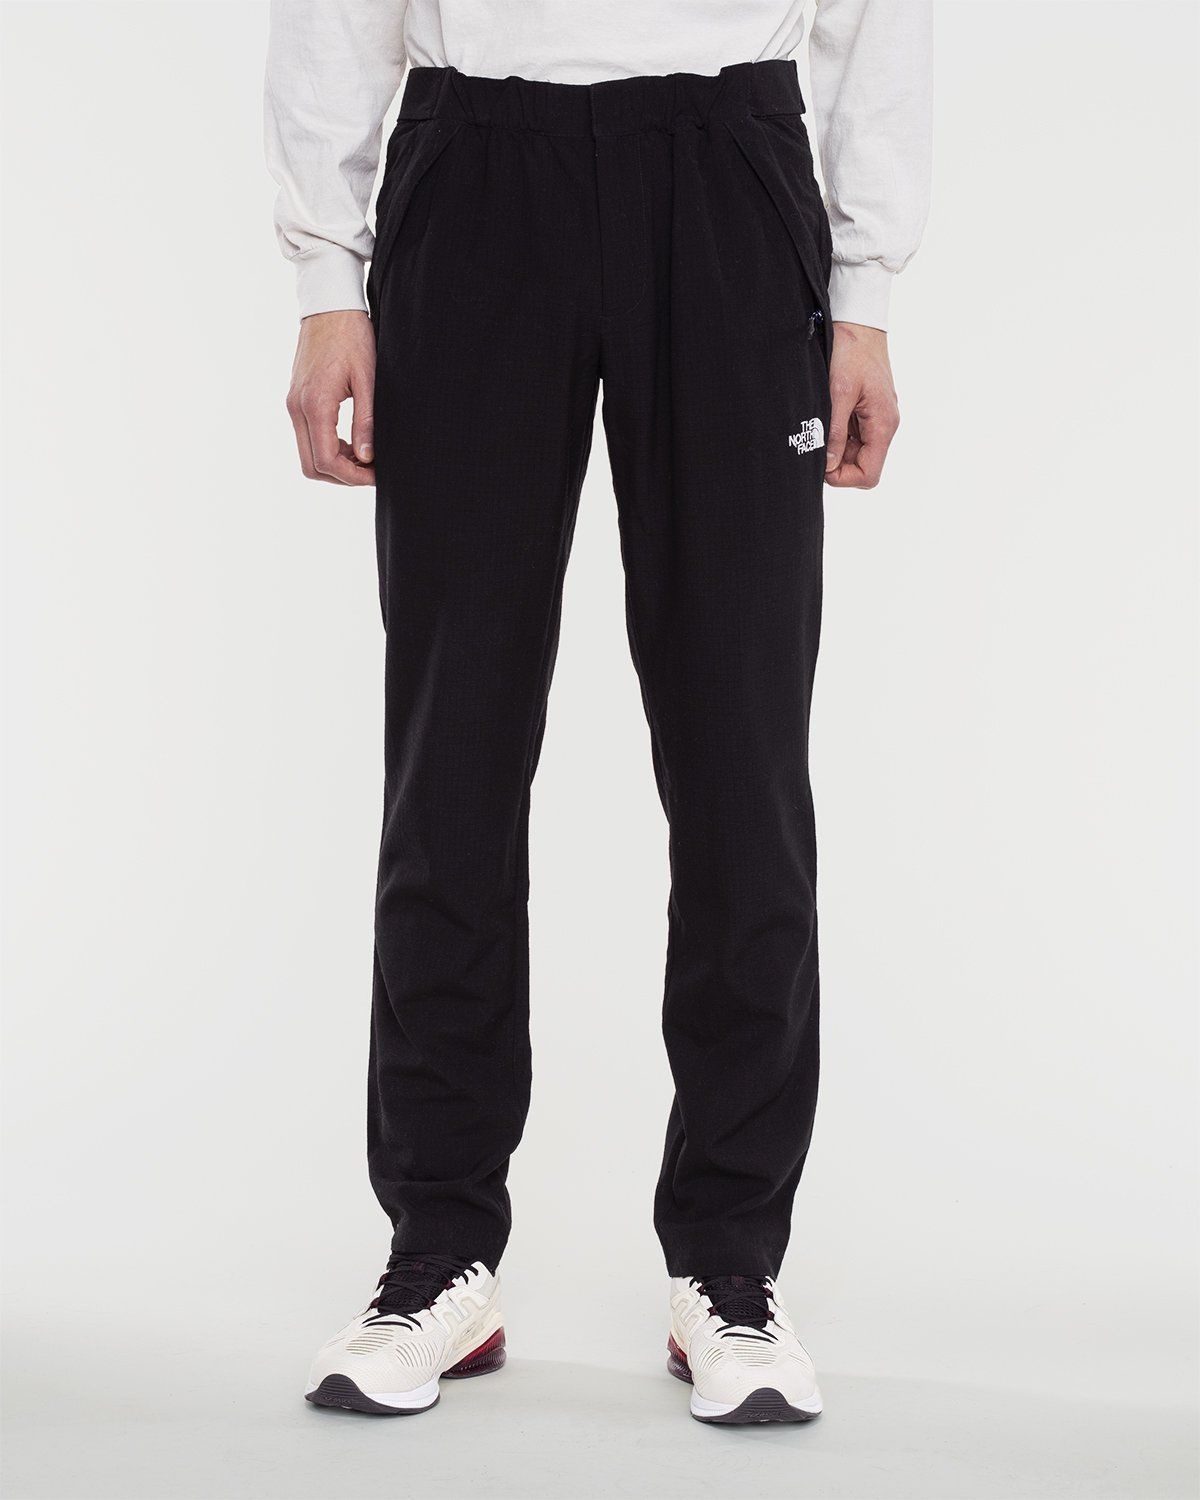 The North Face Black Series — Ripstop Trousers Black - Image 2